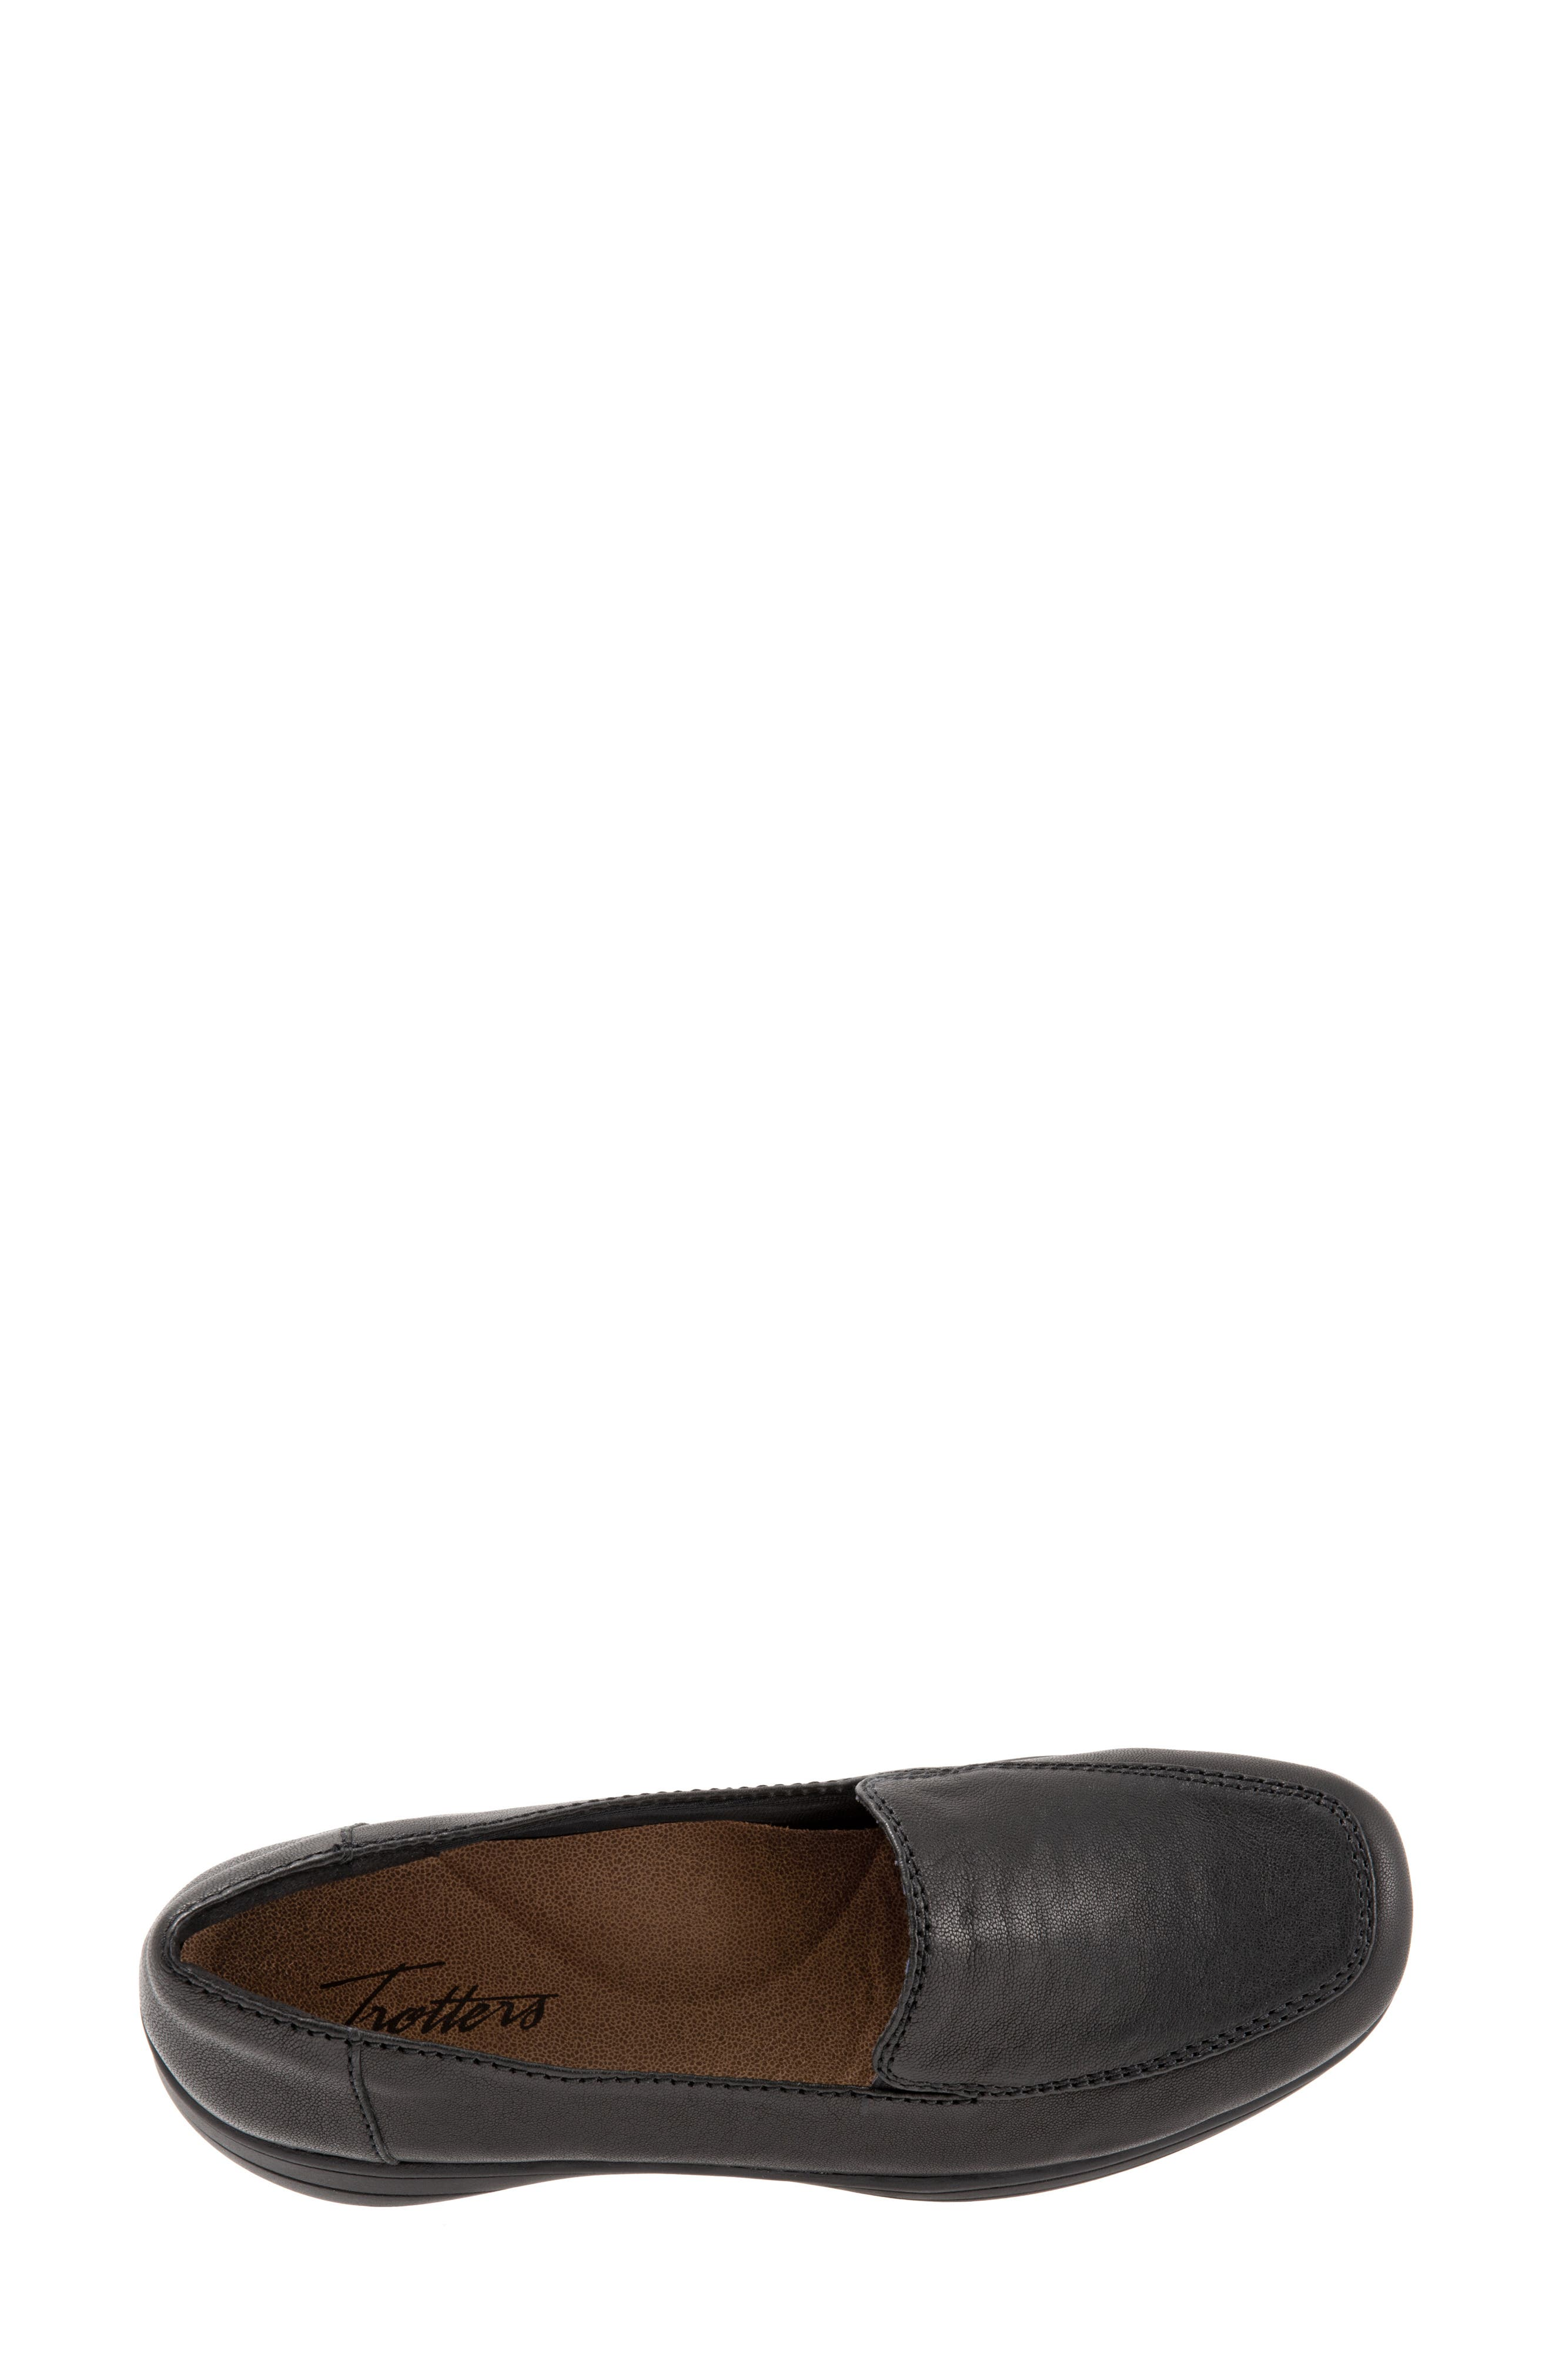 Jacob Loafer,                             Alternate thumbnail 5, color,                             BLACK LEATHER